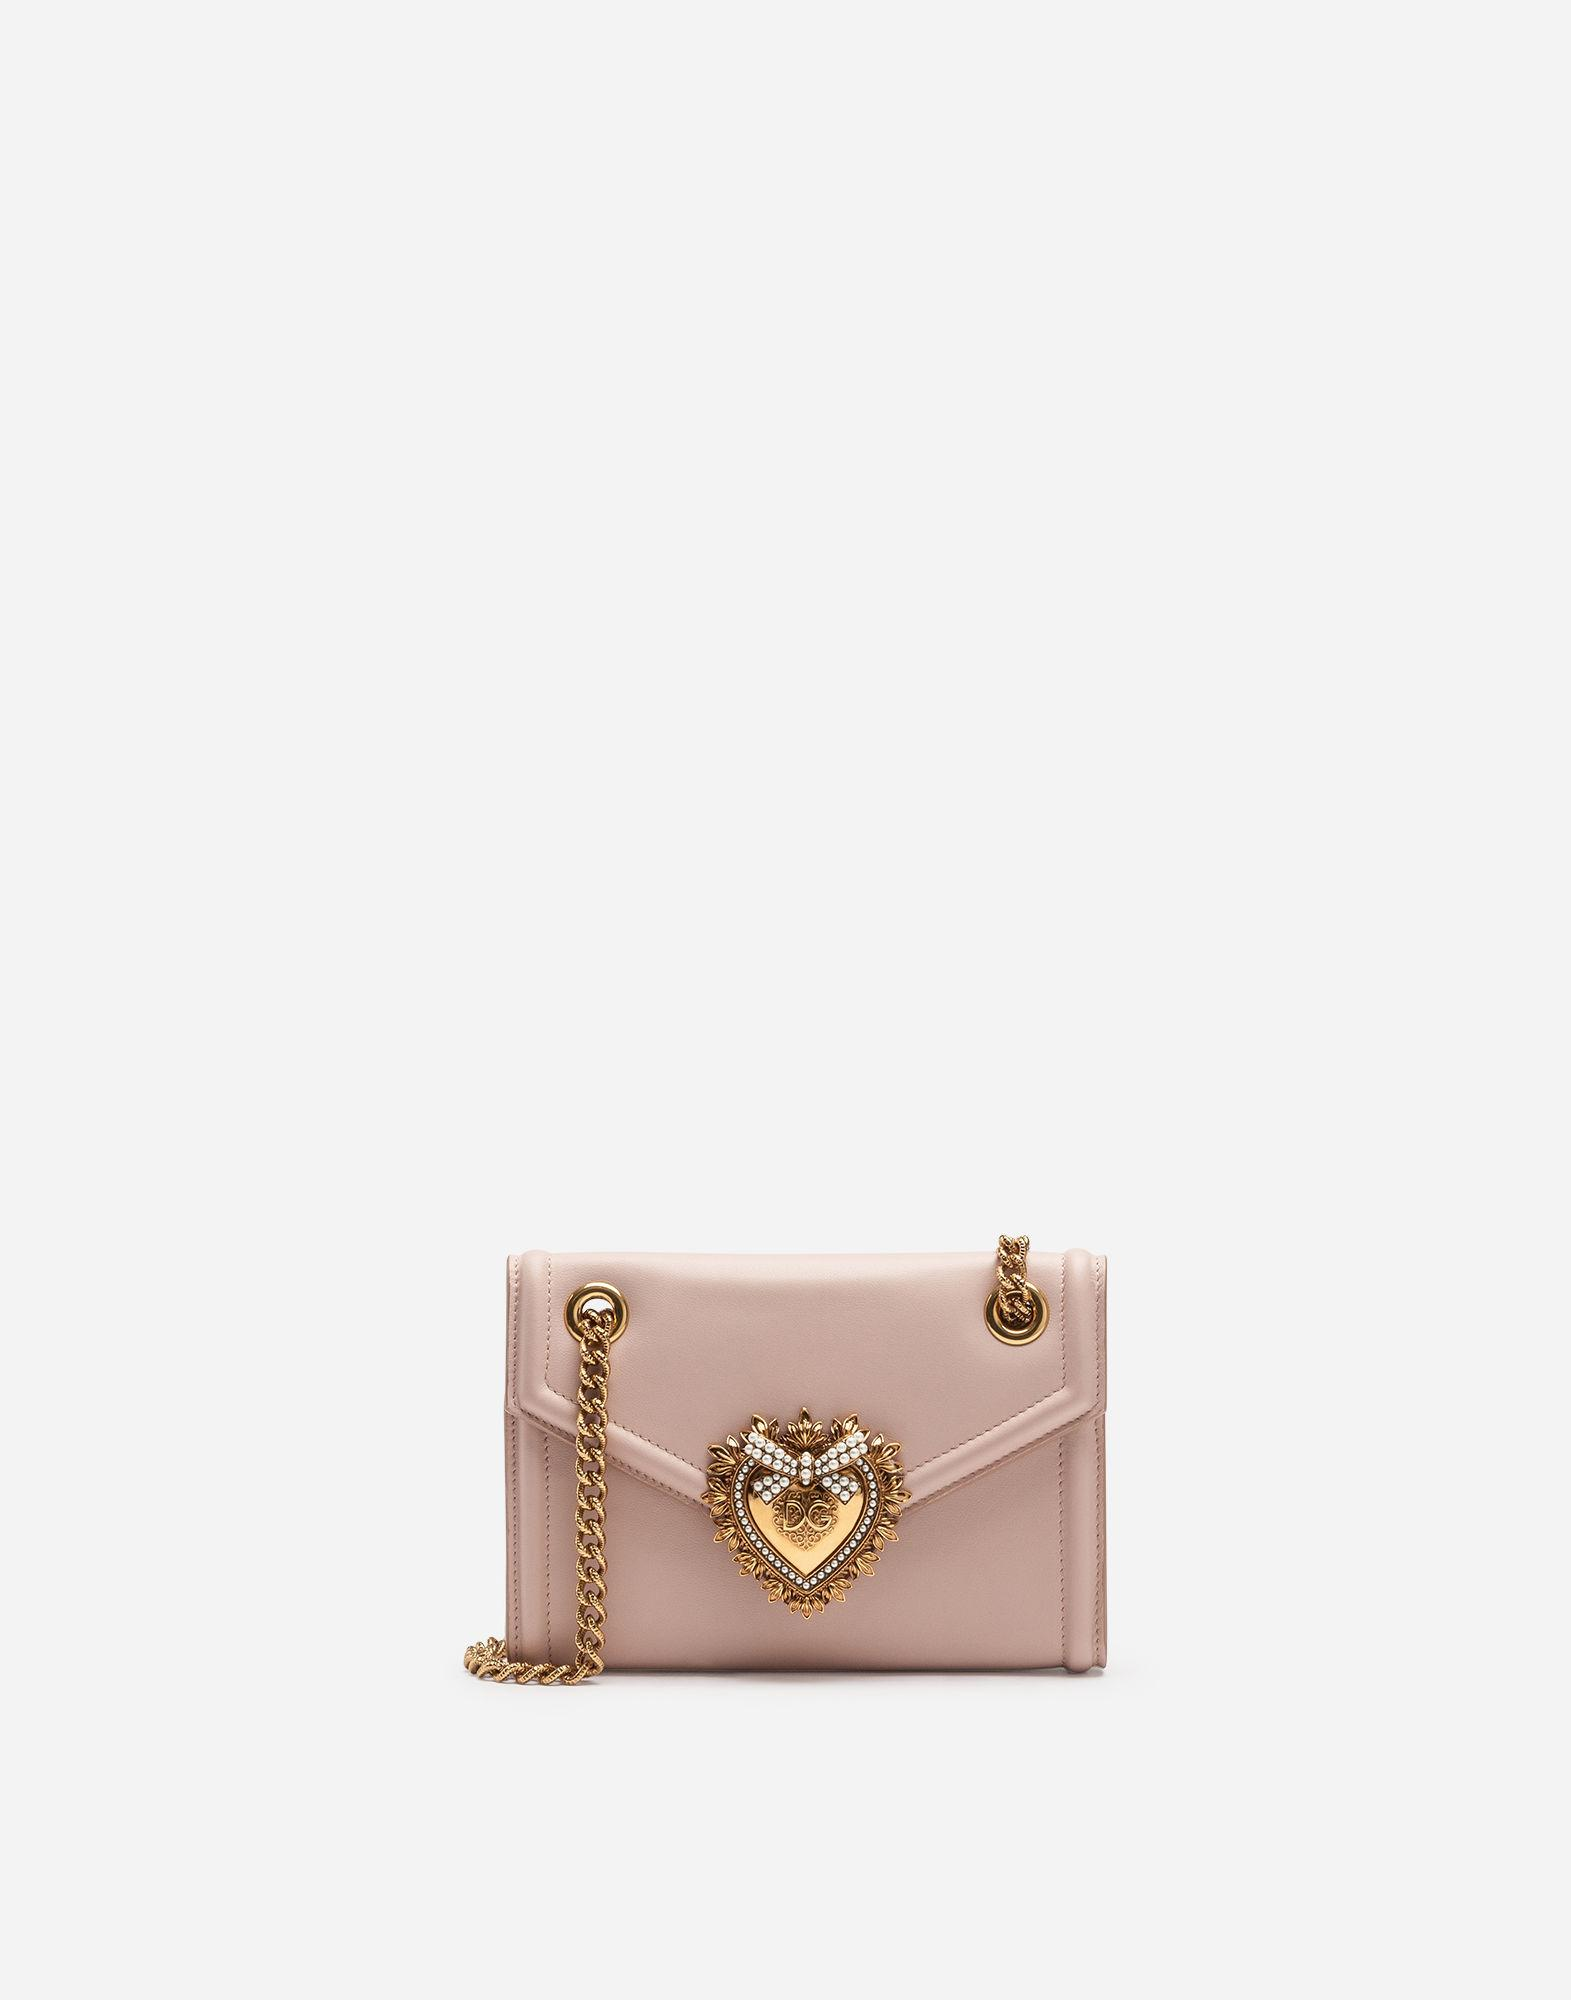 1cee1ee688d3 Lyst - Dolce   Gabbana Mini Devotion Bag In Smooth Calfskin in Pink